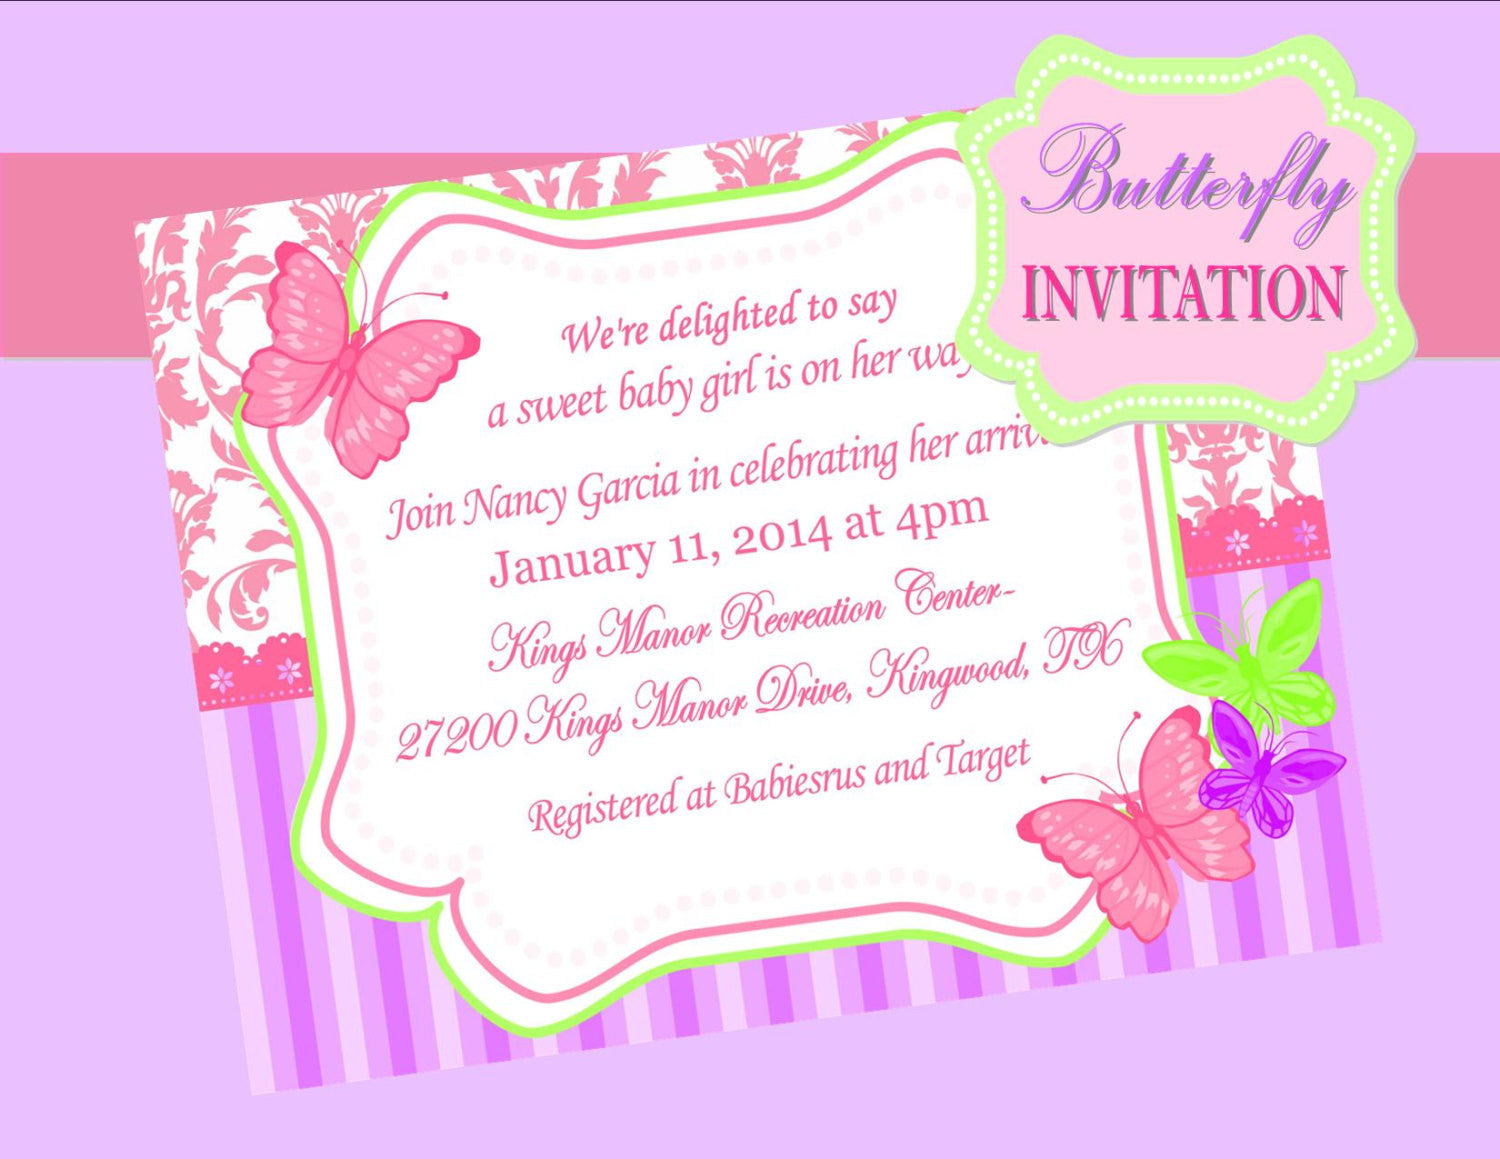 BUTTERFLY INVITATION - Birthday Party - Wedding- Shower – Krown ...